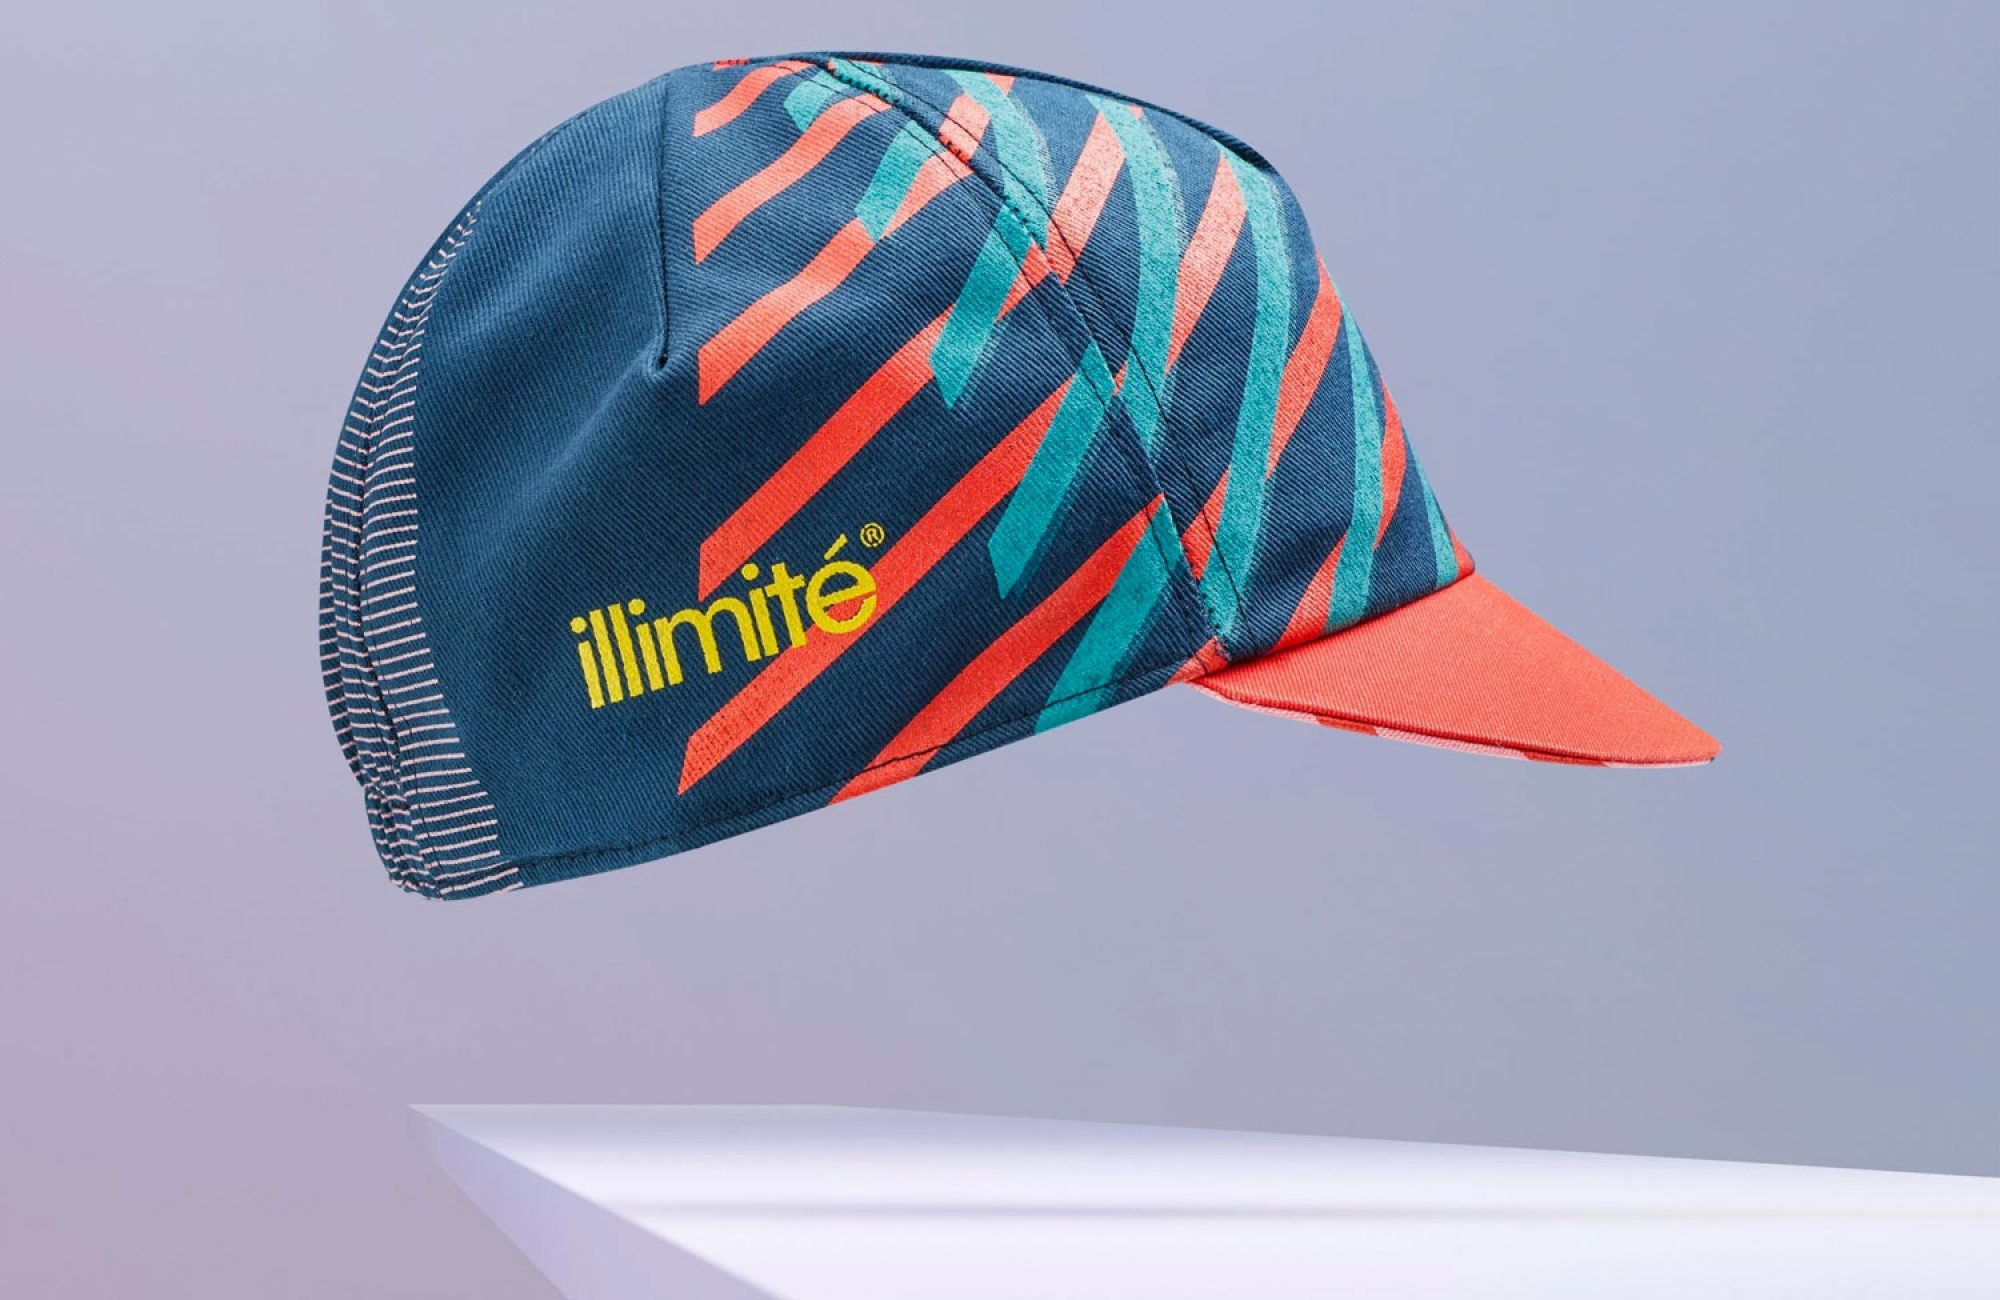 illimite-cycling-caps-teaser